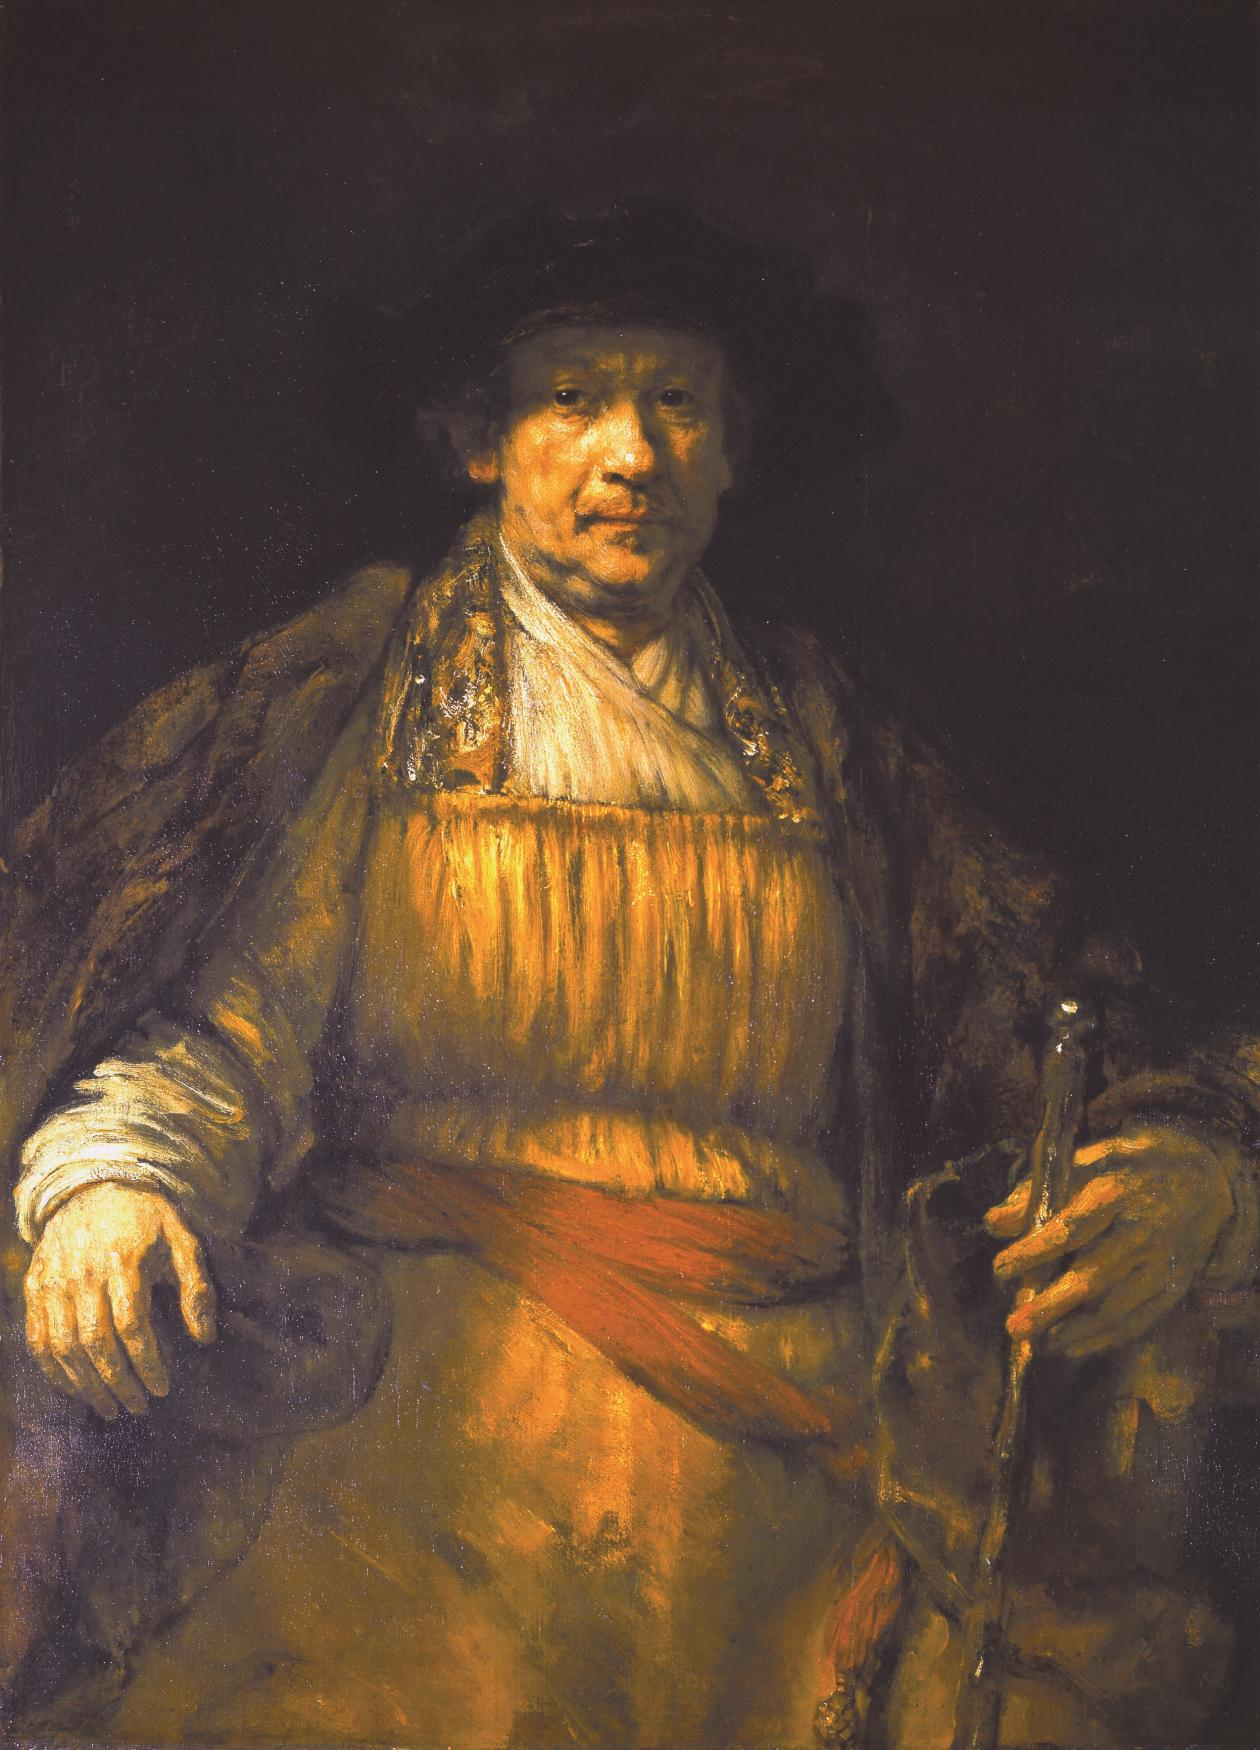 Oil self portrait of Rembrandt